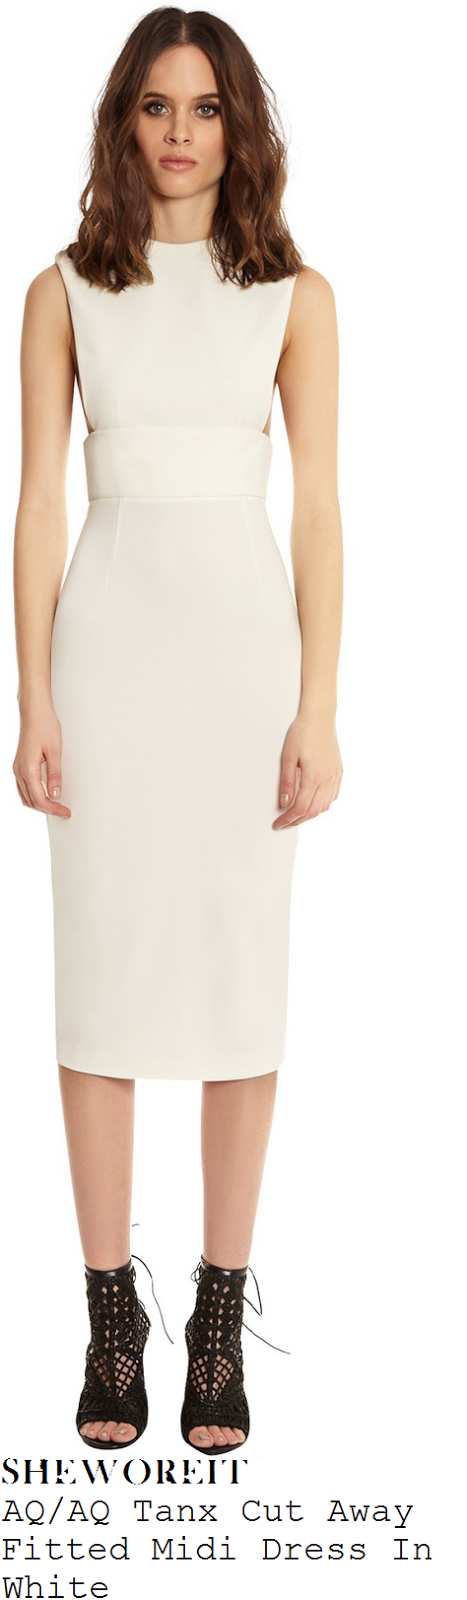 lucy-mecklenburgh-aq/aq-tanx-white-cream-cut-away-fitted-midi-dress